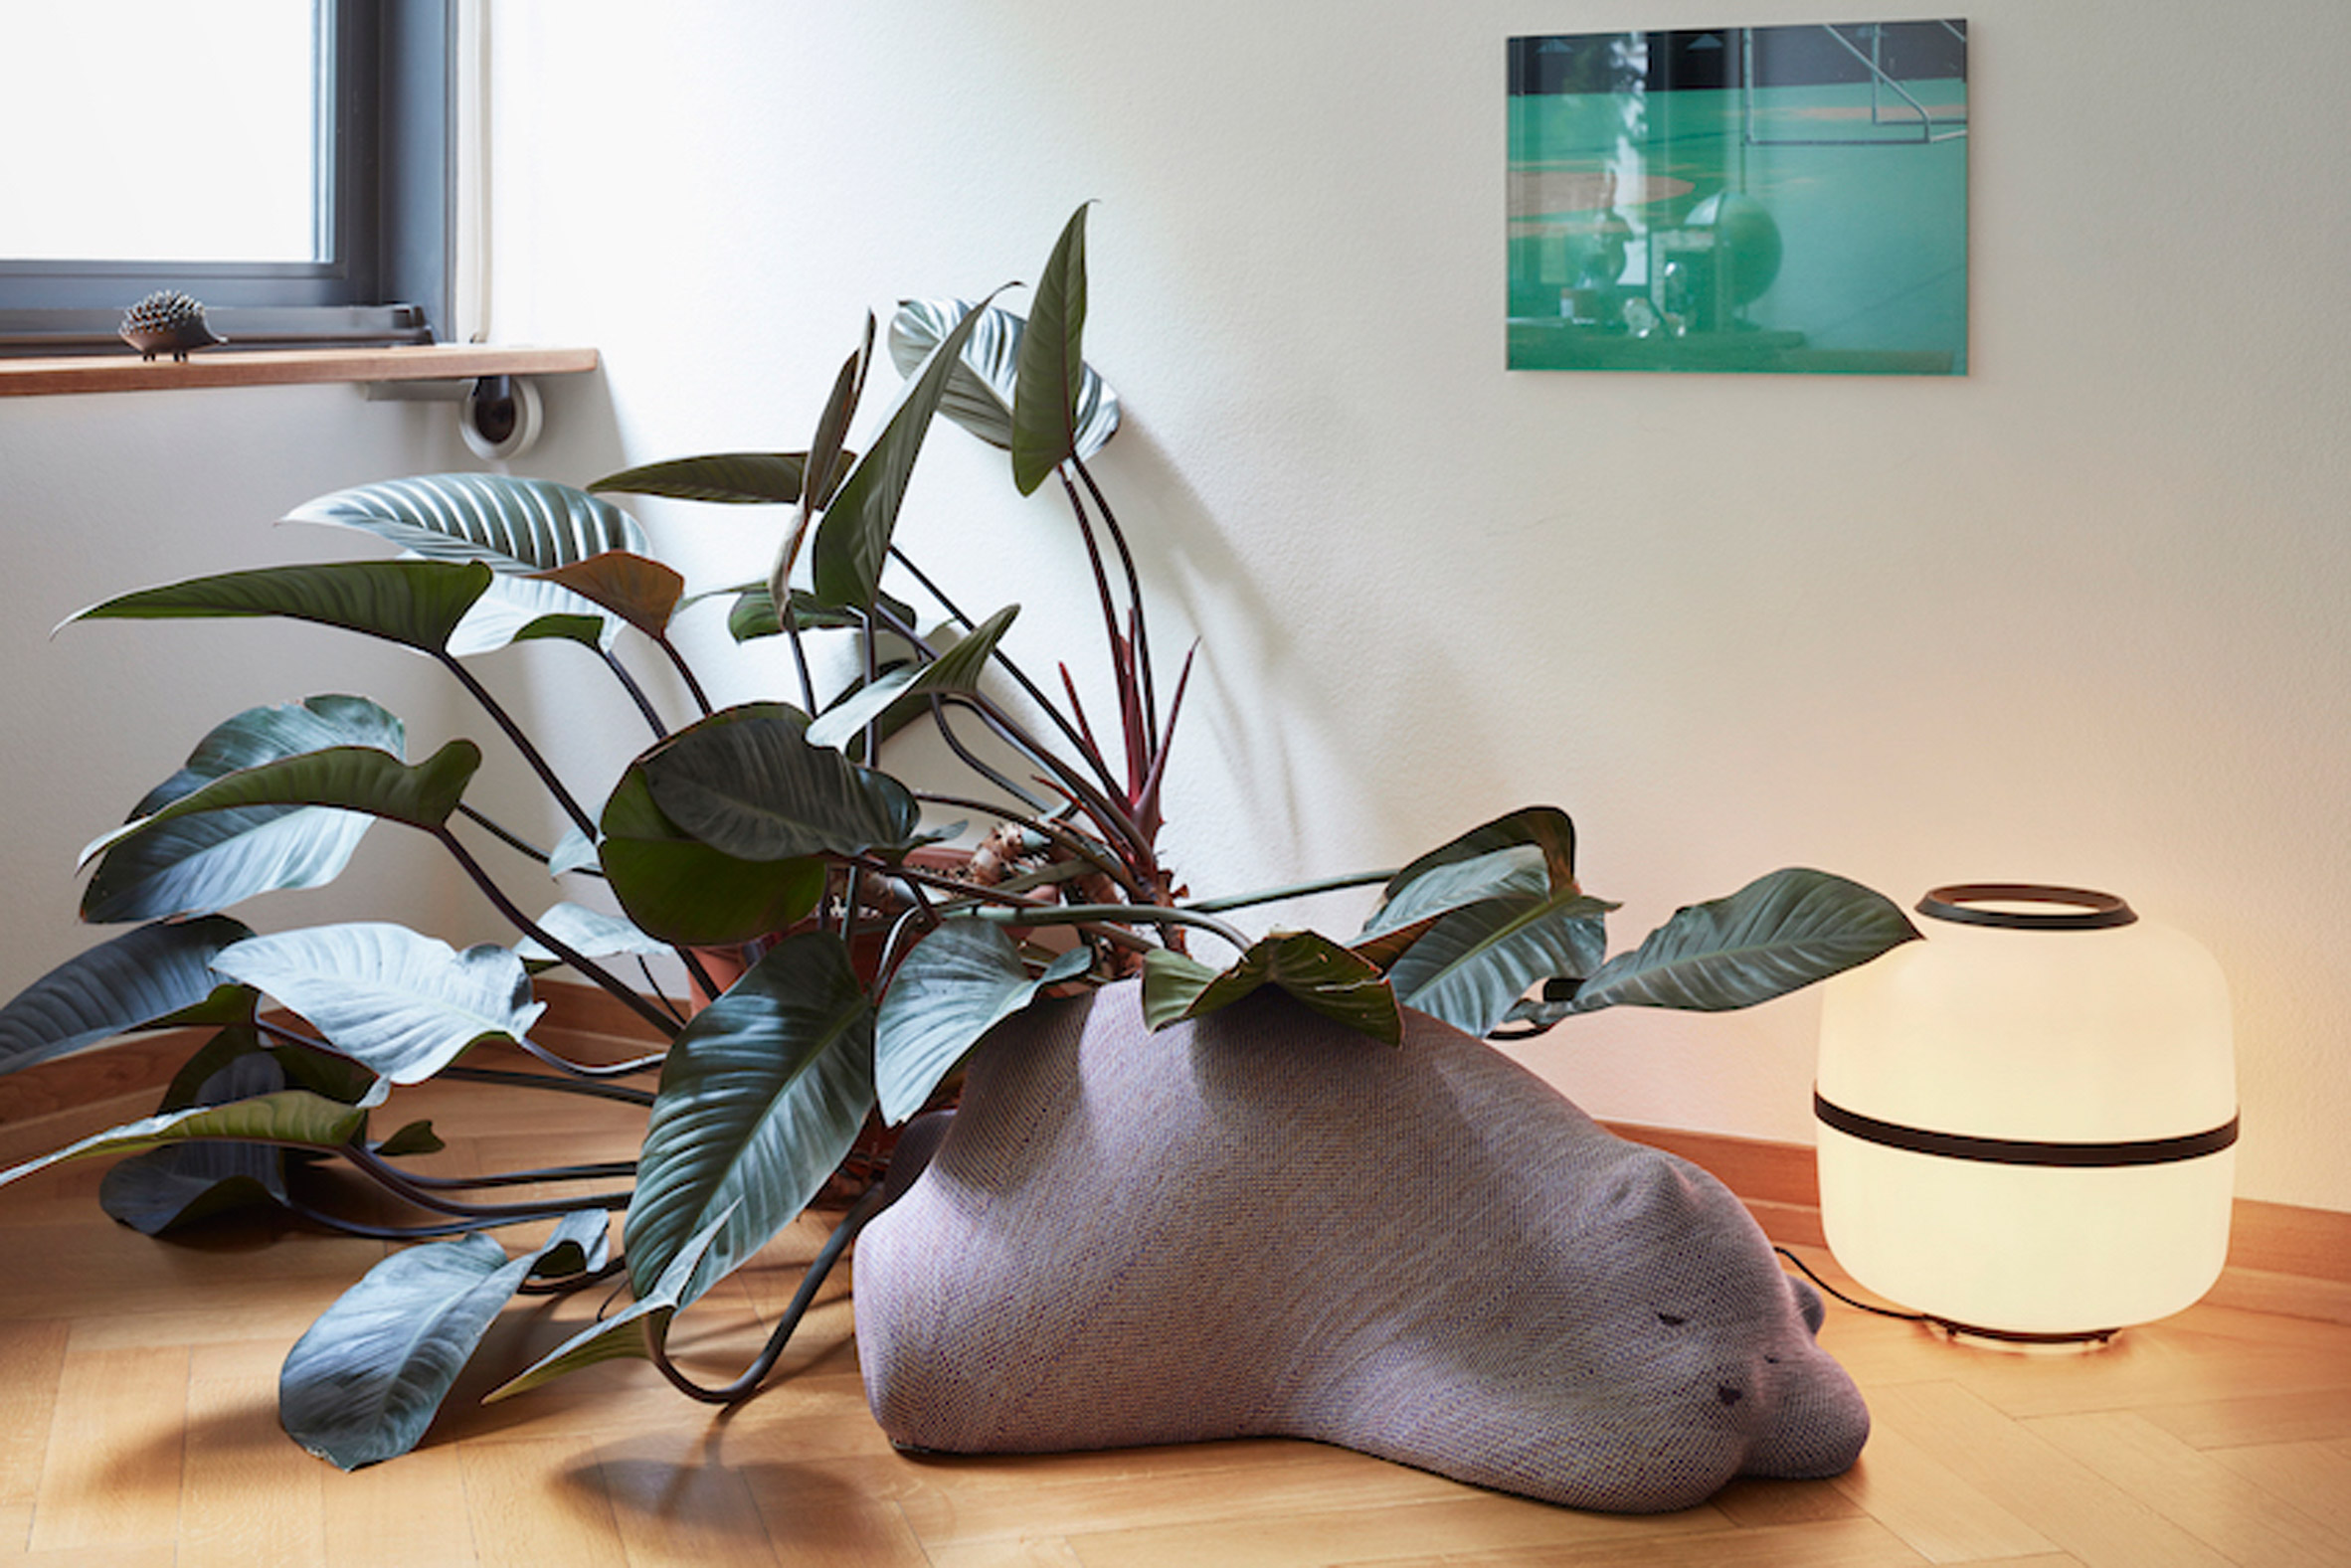 vitra-resting-animals-design_dezeen_2364_col_4